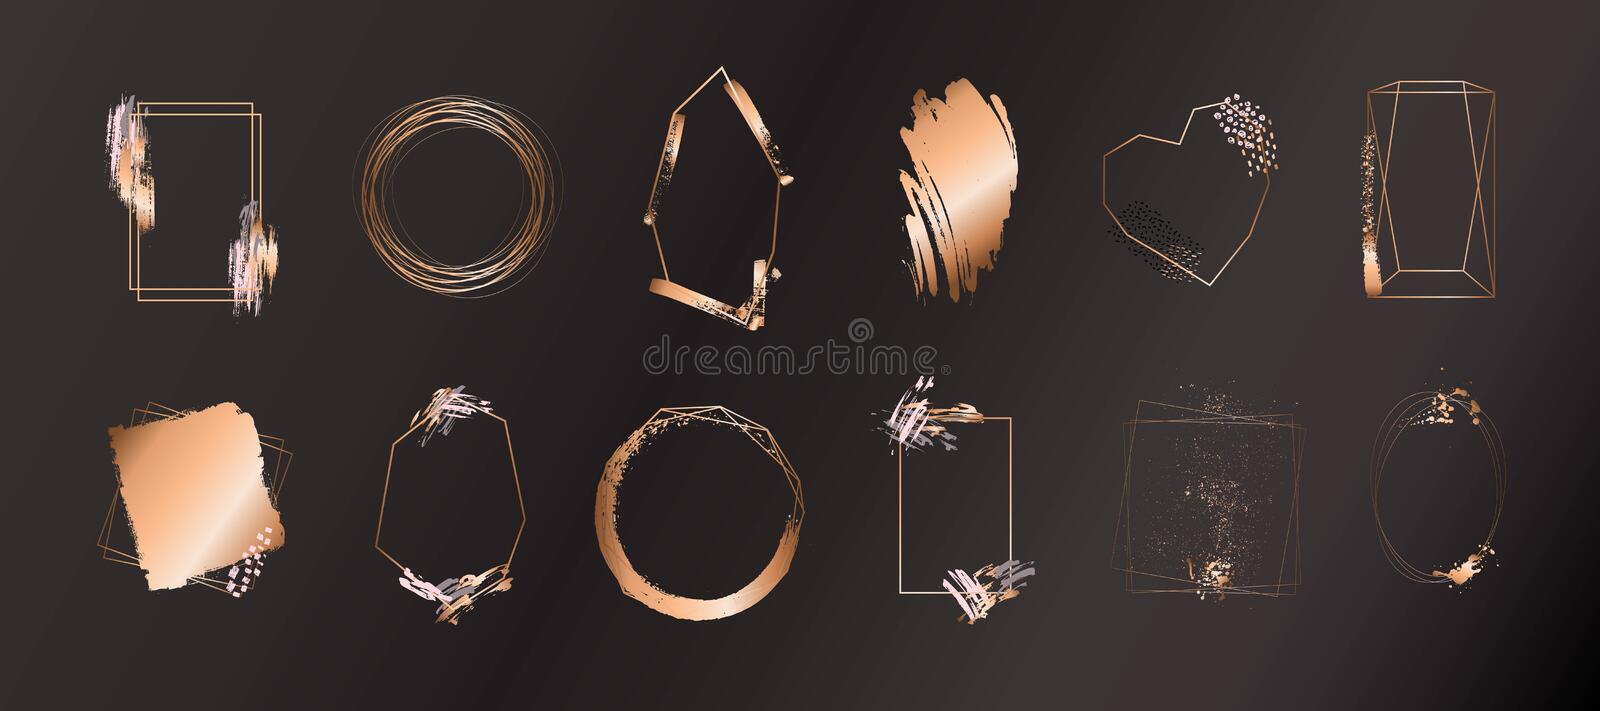 Gold collection of geometric frame. Decorative element for logo, branding, card, invitation. royalty free illustration